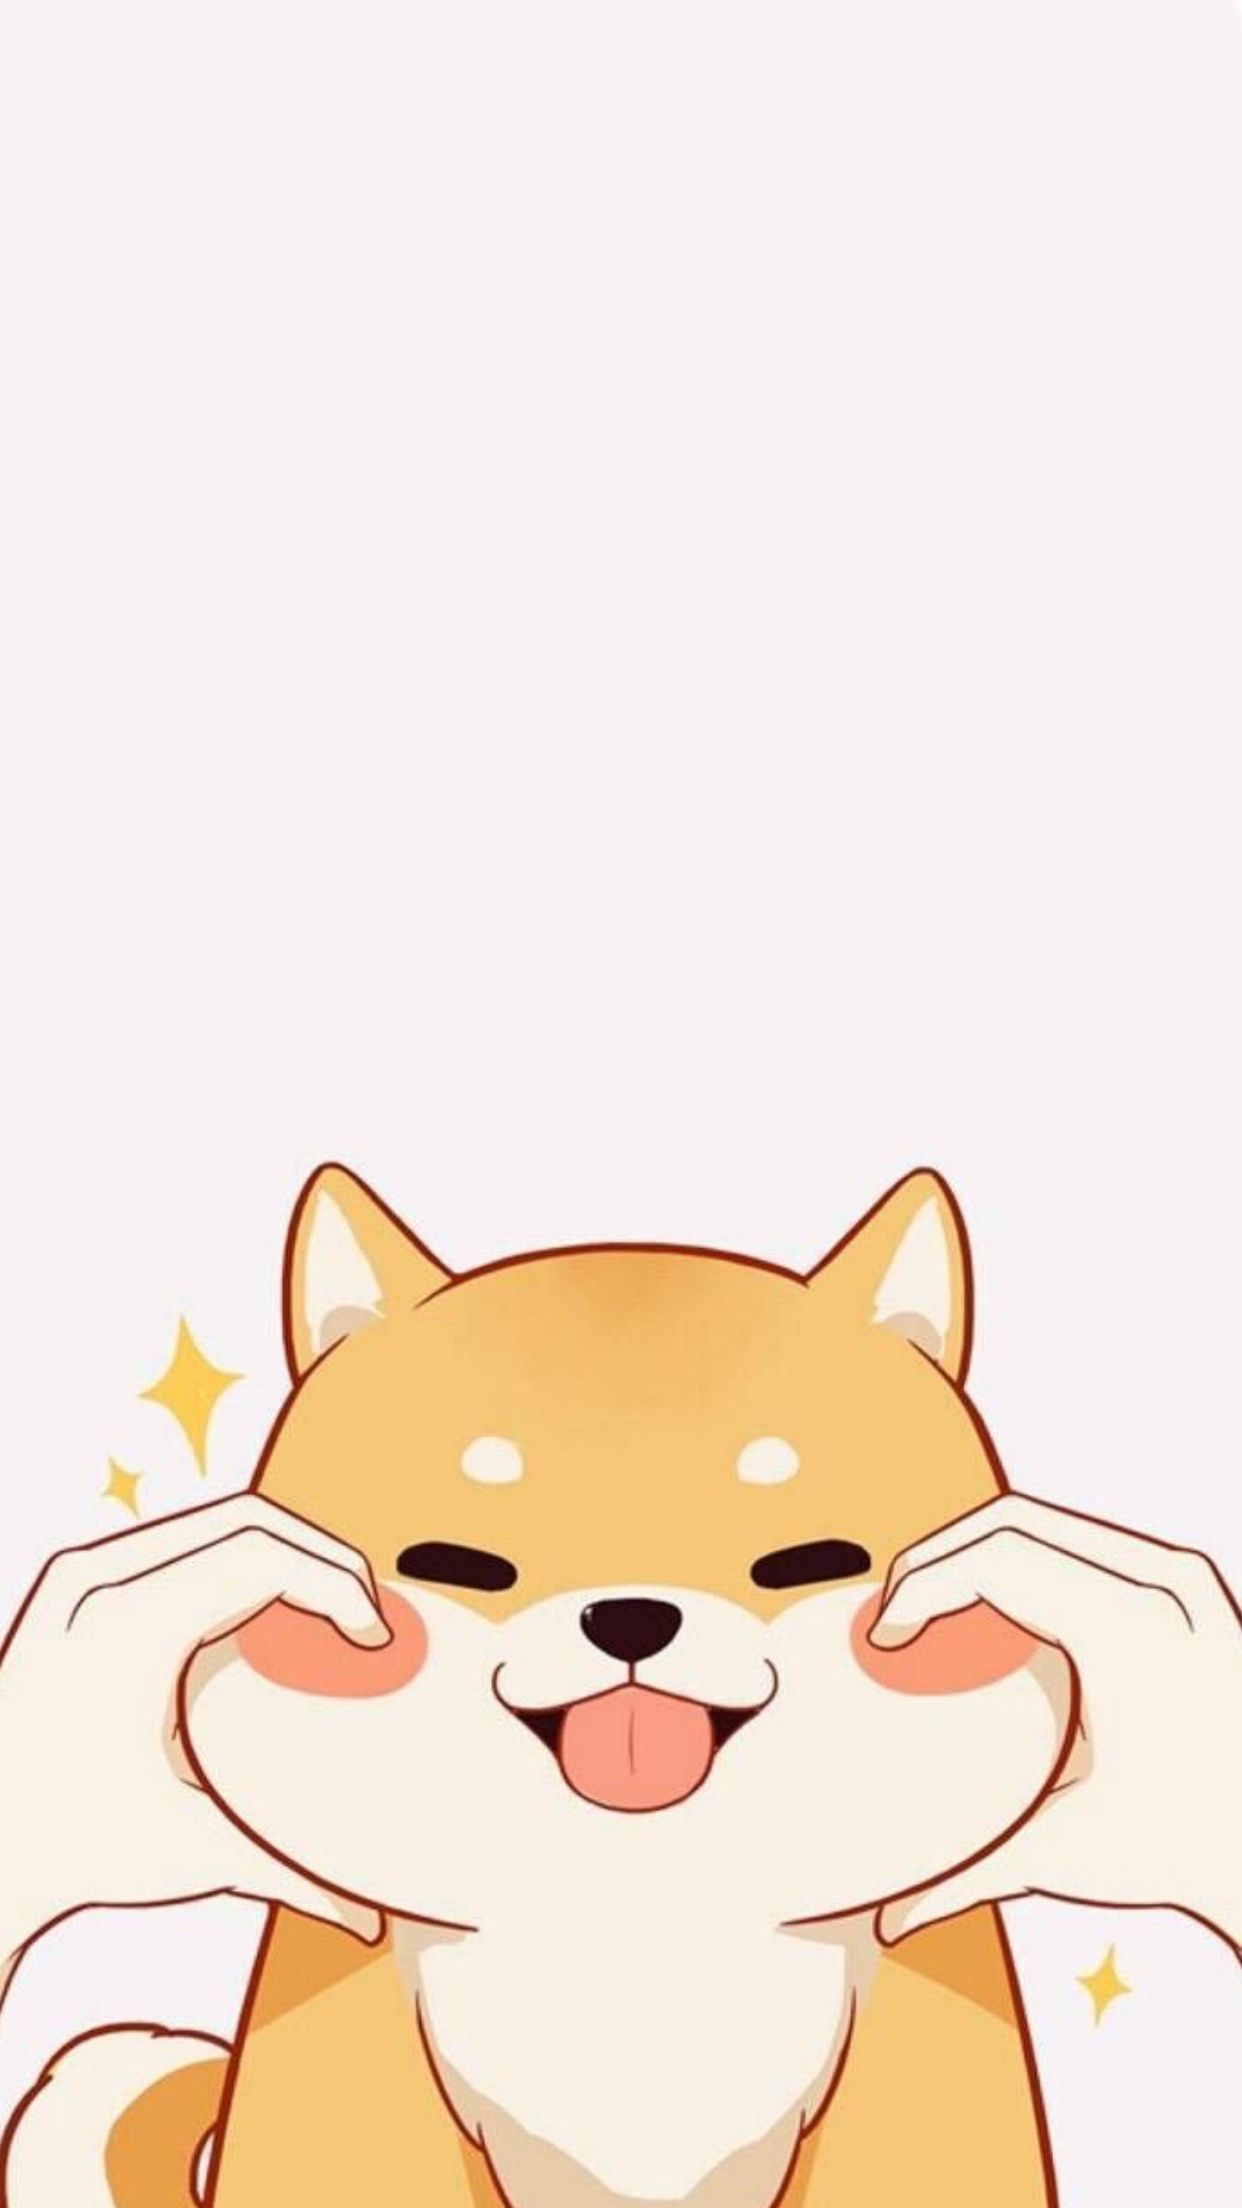 Anime Dog Wallpapers Top Free Anime Dog Backgrounds Wallpaperaccess